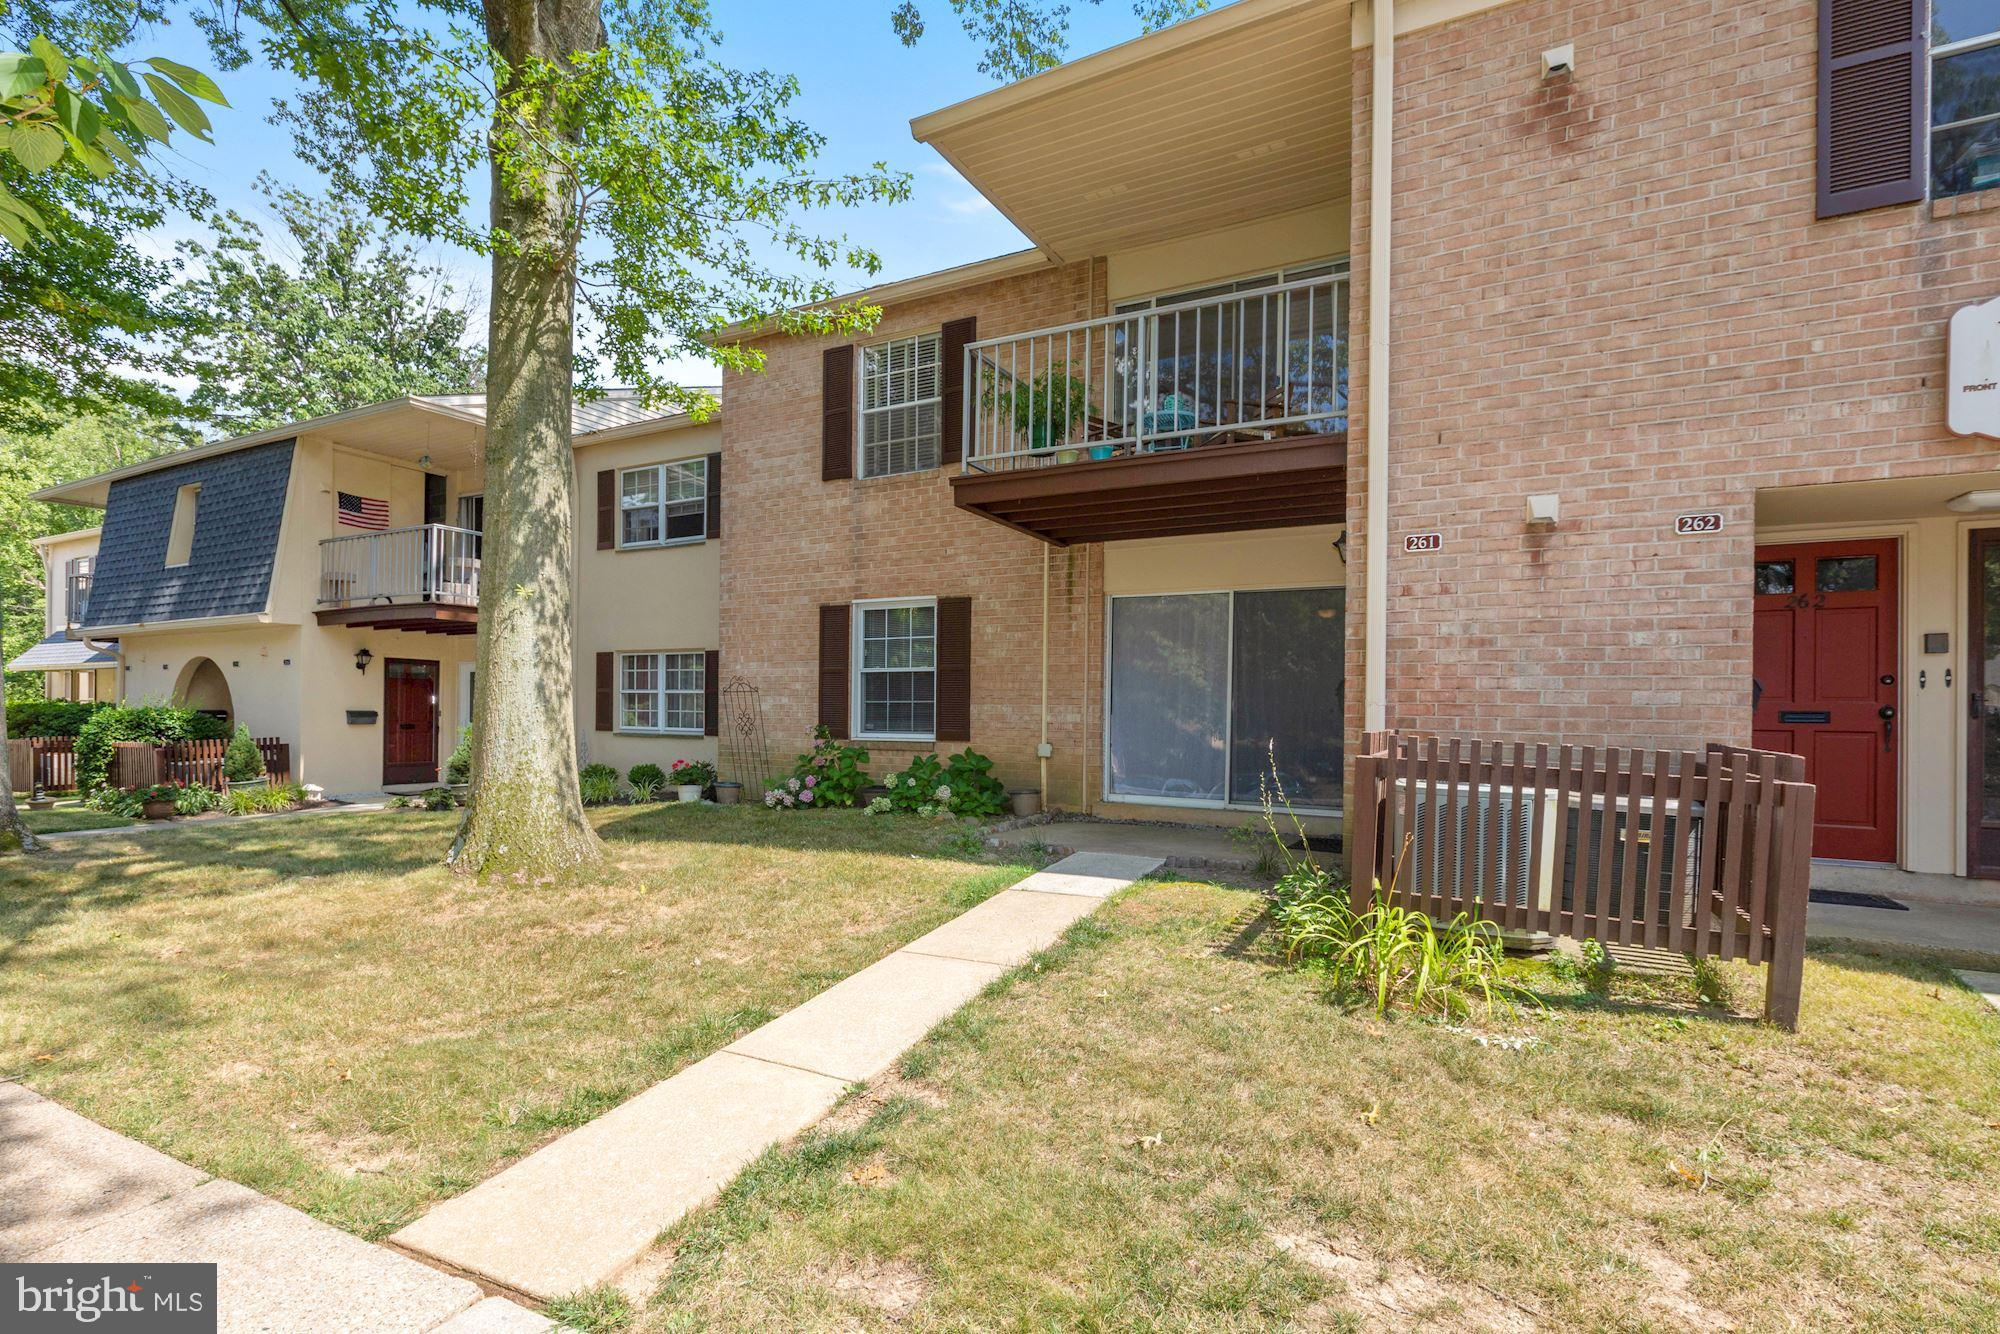 Welcome to 261 Old Forge Crossing. At 875 Square feet this is one of the larger one bedroom units in the community. Included in the 875 square feet is a large walk in closet, a laundry and foyer. The seller has opened up the wall between the kitchen and living room and installed a quartz countertop. Just what you have been waiting for is in Old Forge Crossing, a first floor, garden entrance style condominium, close to parking.  Ready for immediate occupancy just in time to enjoy the community pool and tennis courts. This unit has an open layout featuring a spacious living room with a large sliding glass door to a patio, a dining room leading to the  kitchen featuring lots of cabinets, pantry, lighting, and a spacious  refrigerator. Walk down the hallway to the spacious bedroom with a walk-in closet. Back down the hallway is the laundry closet with a full-size washer and dryer, shelving, and a full bath with tub/shower combination and linen closet. Wall to wall carpeting  in the living, dining room, bedroom and hallway. Old Forge Crossing is an award-winning and well-run condominium community and has plenty to offer;. Enjoy time at the community pool or a game of tennis in one of the two courts included in the condo fee, also included is the gas for cooking and gas for the dryer, hot water, all outside maintenance including snow removal from your walkway. This highly sought-after development is situated on forty beautifully landscaped acres featuring well maintained grounds and walking paths.  OFC provides private access to the new Chester Valley Trail. It's a short commute to the Devon or Wayne train stations and bus routes to the city, routes 202, 476, and the turnpike.  It's close to health clubs, shopping, and dining at the King of Prussia Towne Center, King of Prussia Mall, Wegmans, Whole Foods.and the Gateway Shopping Center. Valley Forge National Park is a five minute ride. Be sure to put this home on your must-see list.